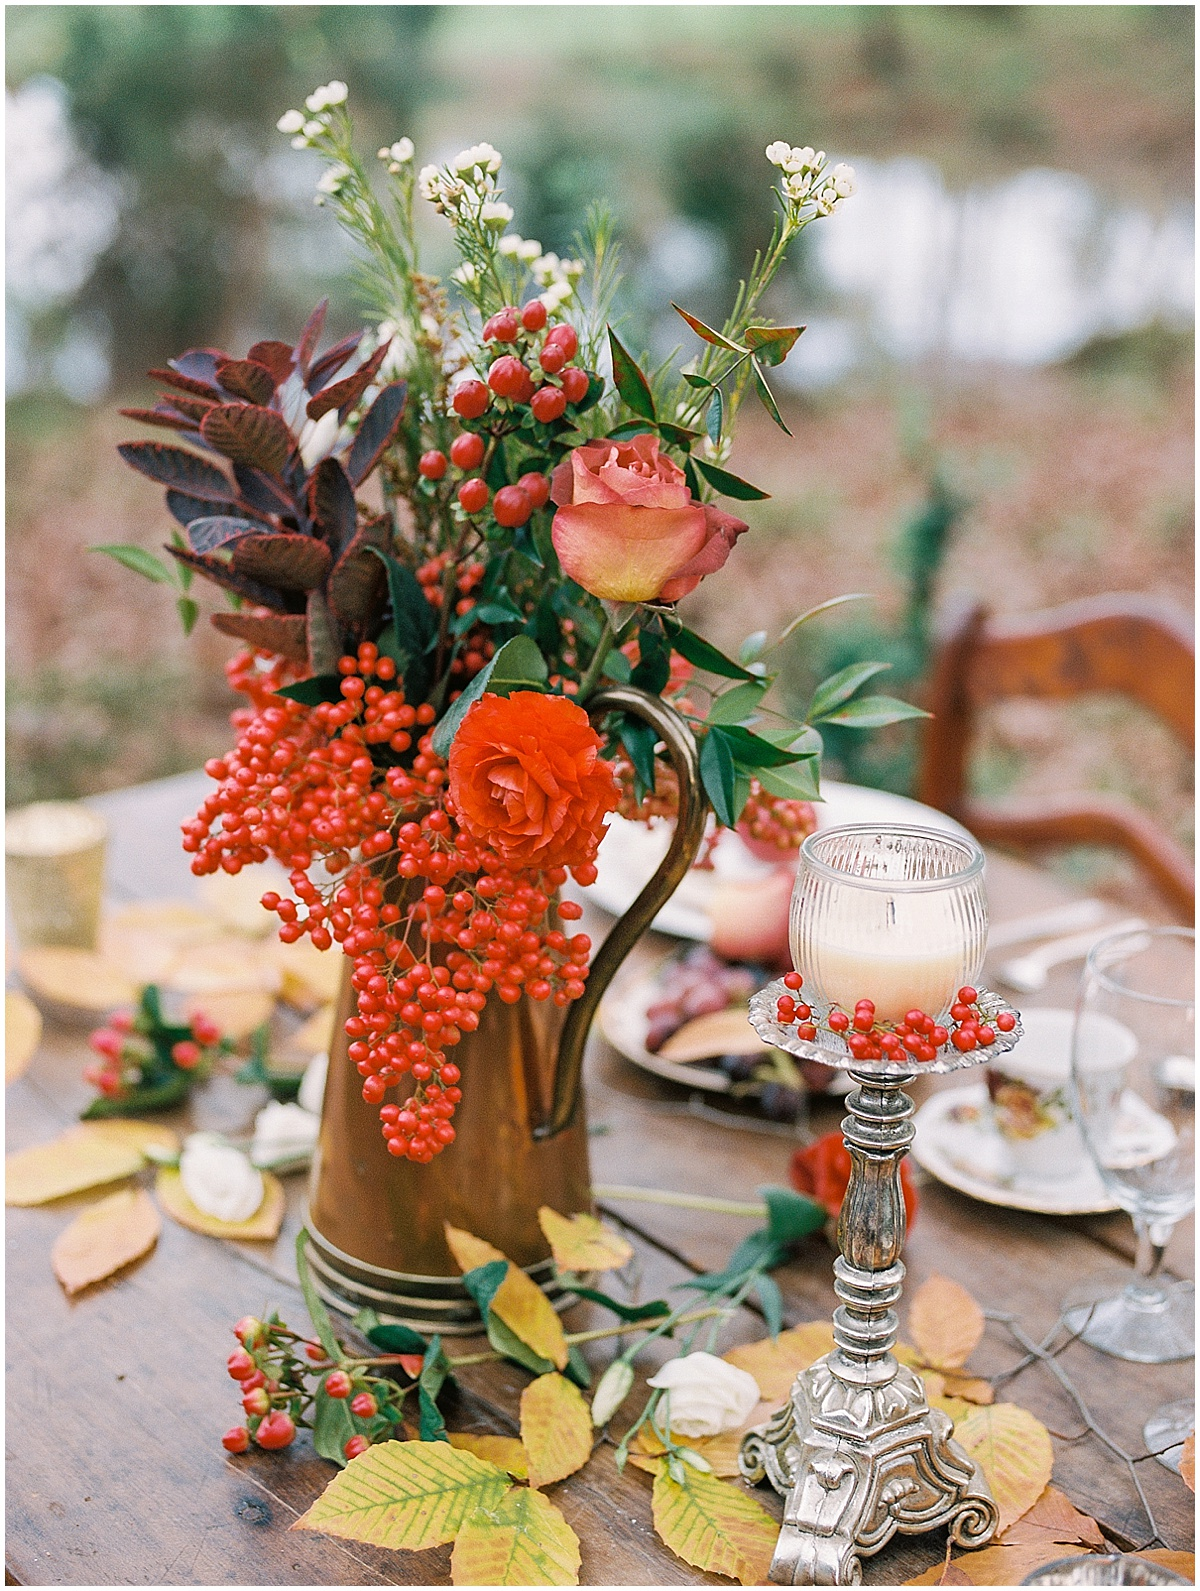 Abigail_Malone_Fall_Wedding_Knoxville_Film_Portra_400_Kodak_Mountain_Views_Abby_Elizabeth-10.jpg